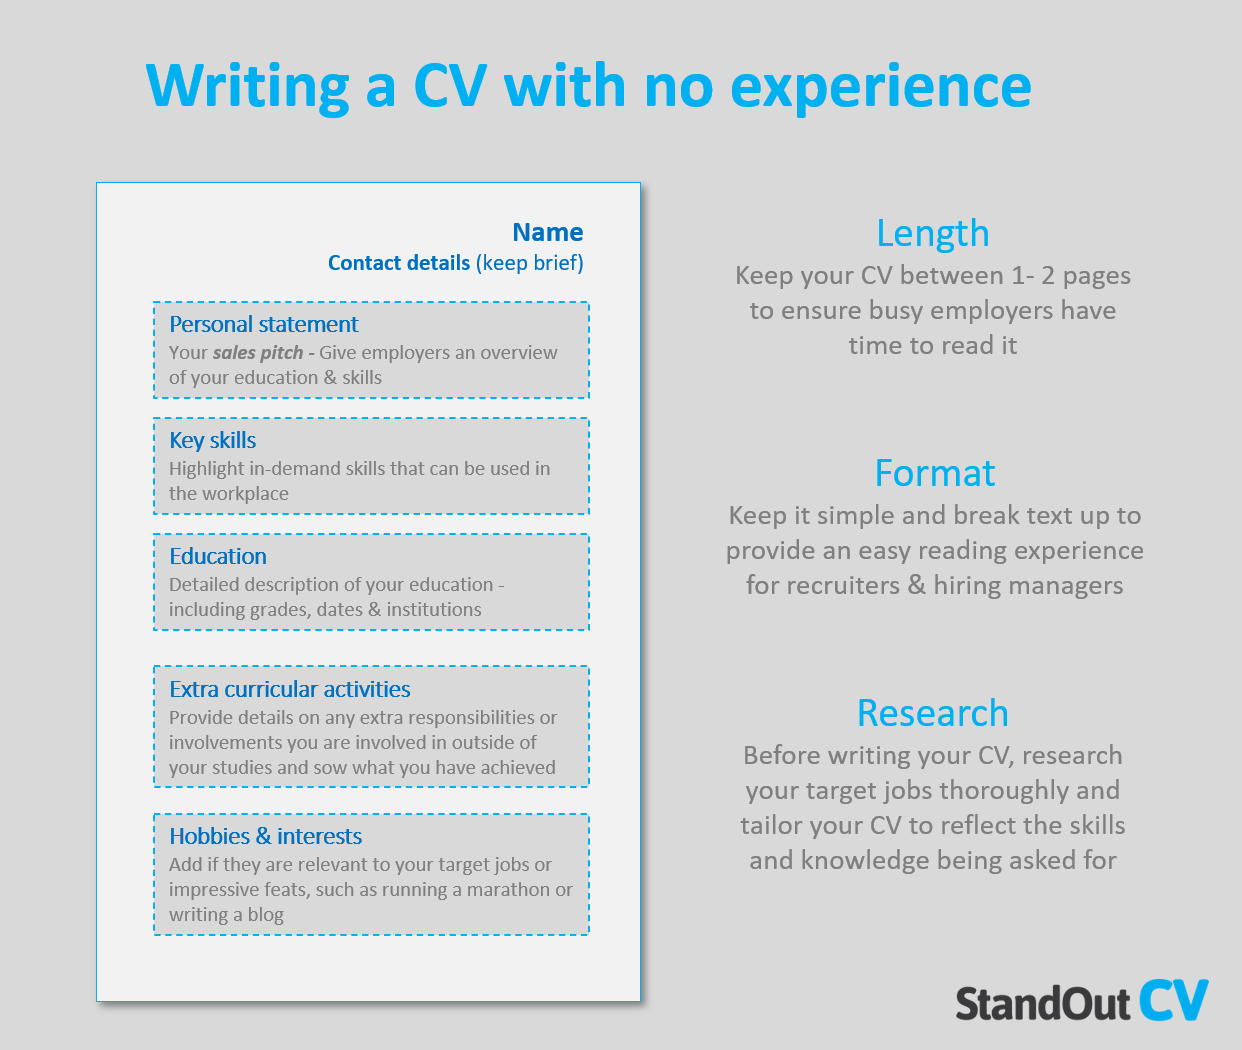 Writing a CV with no experience